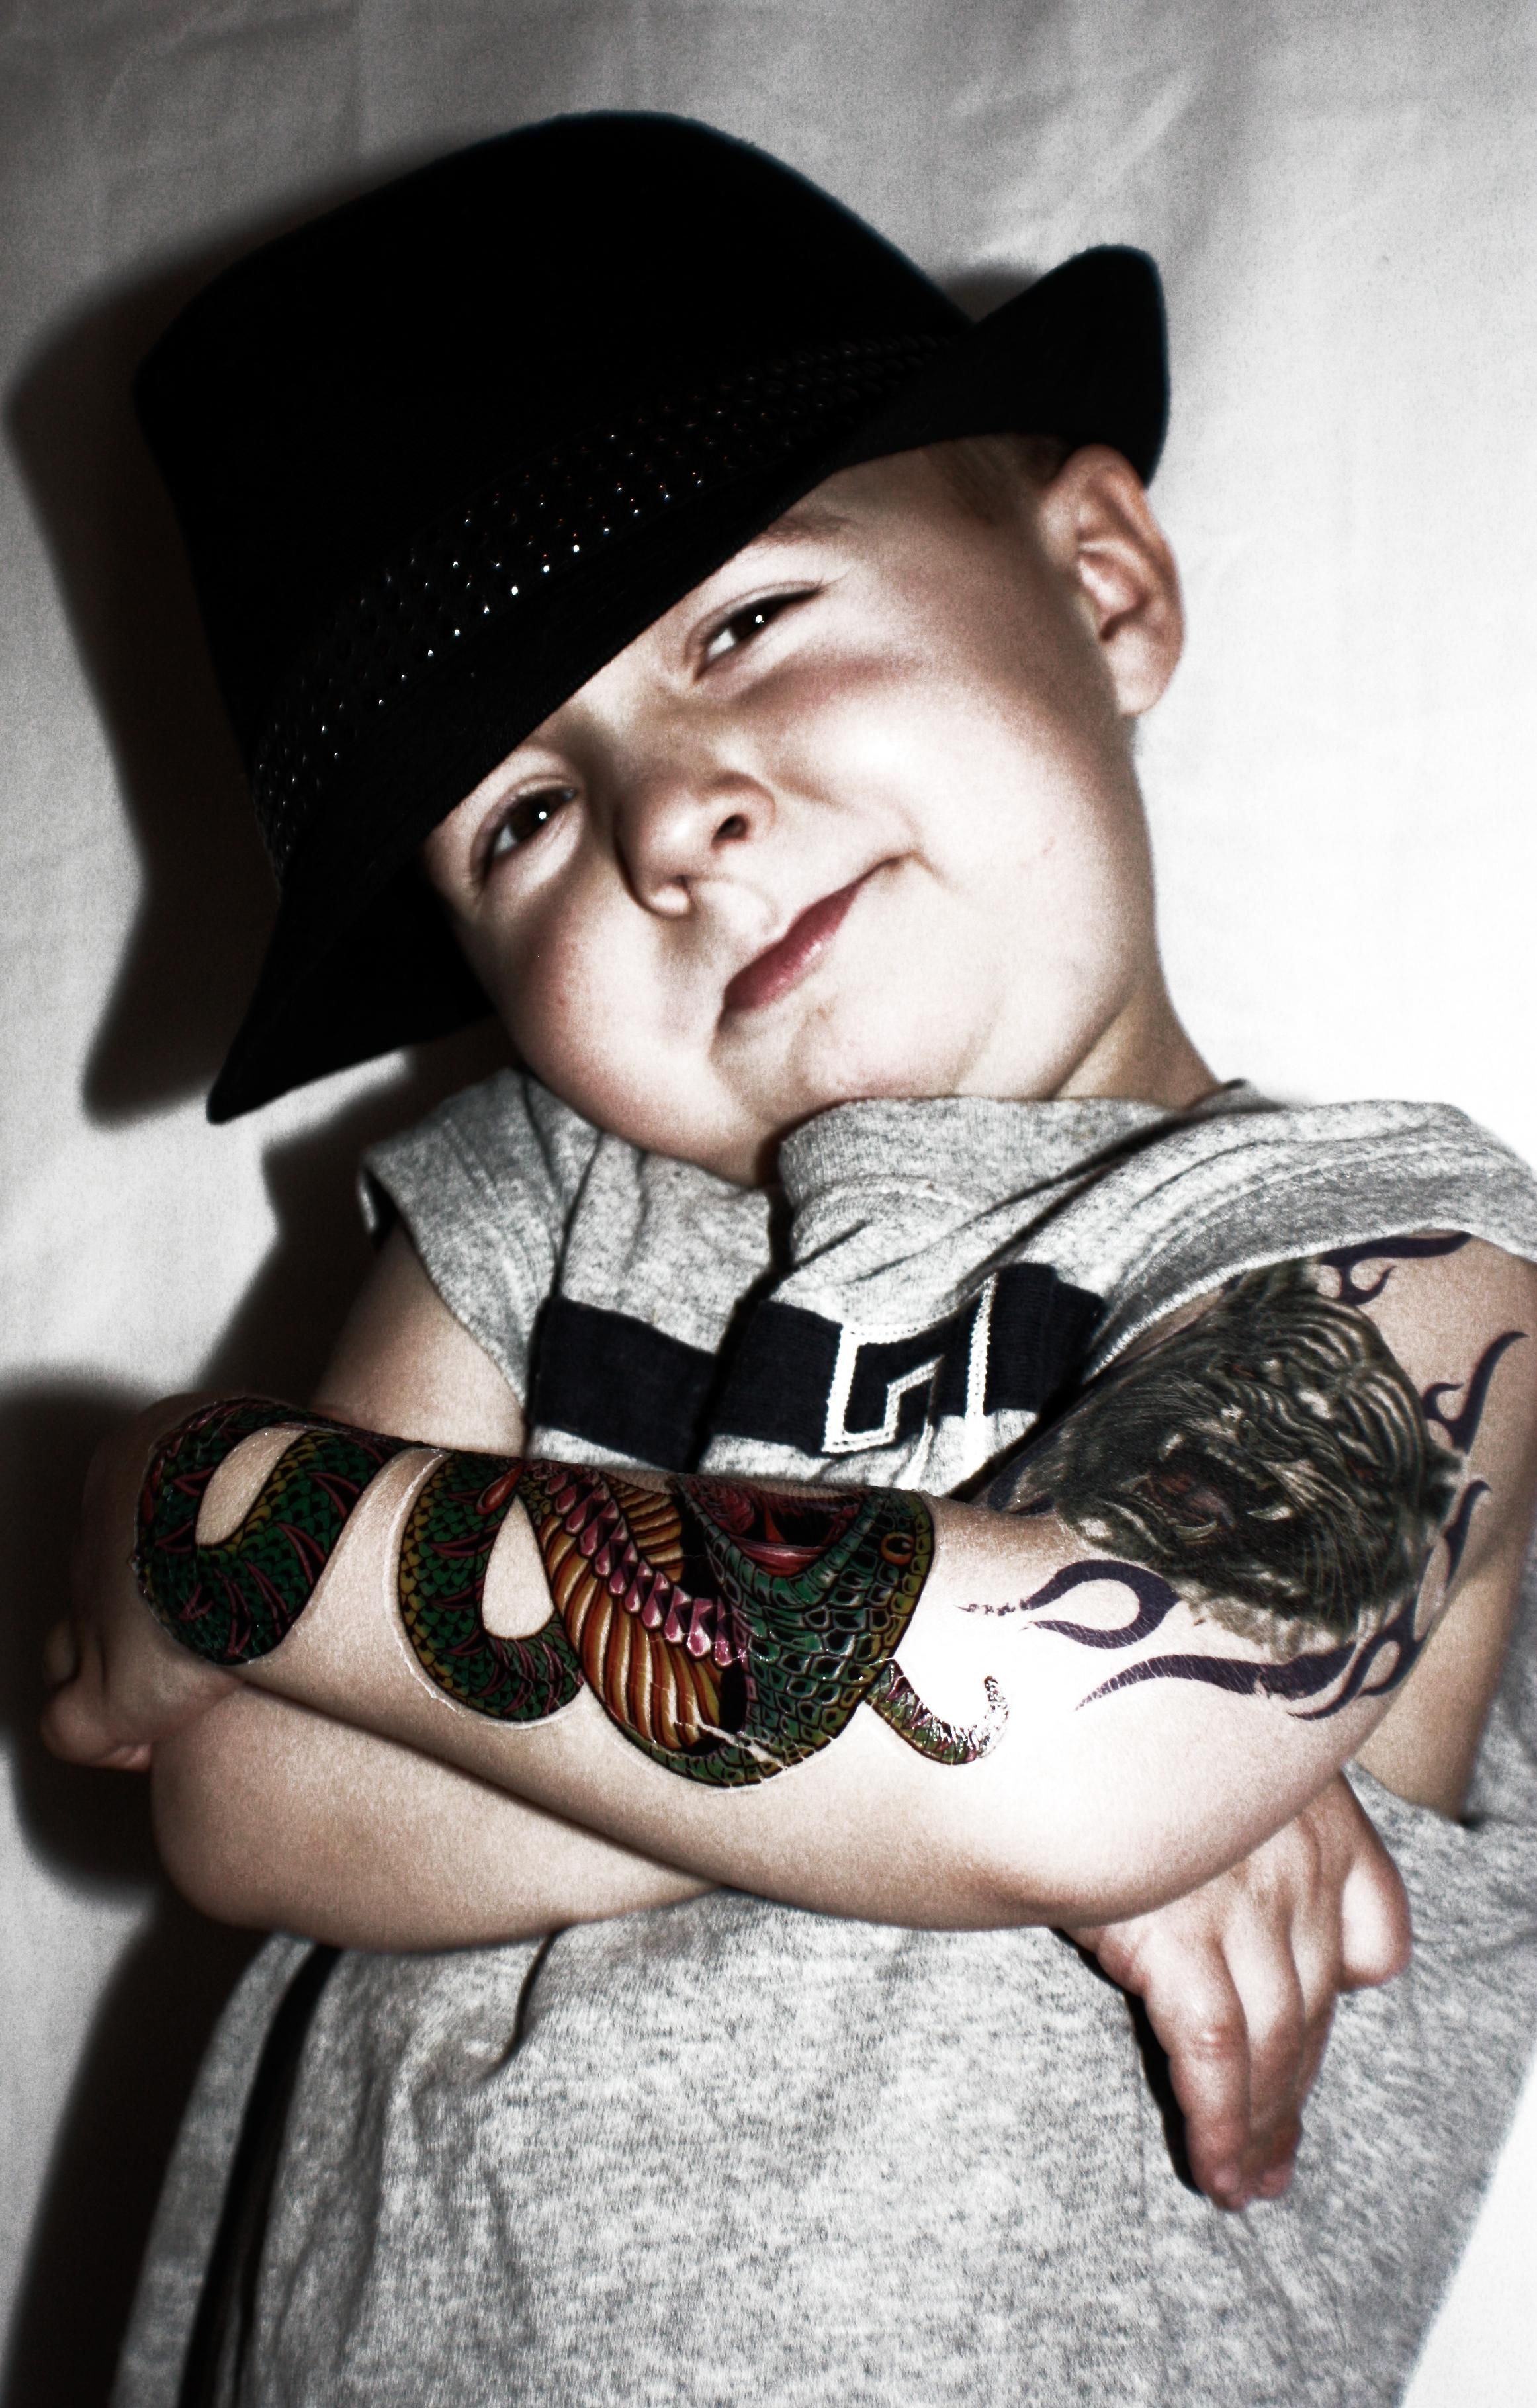 my son dressed up as a bad boy with his stick on tattoos